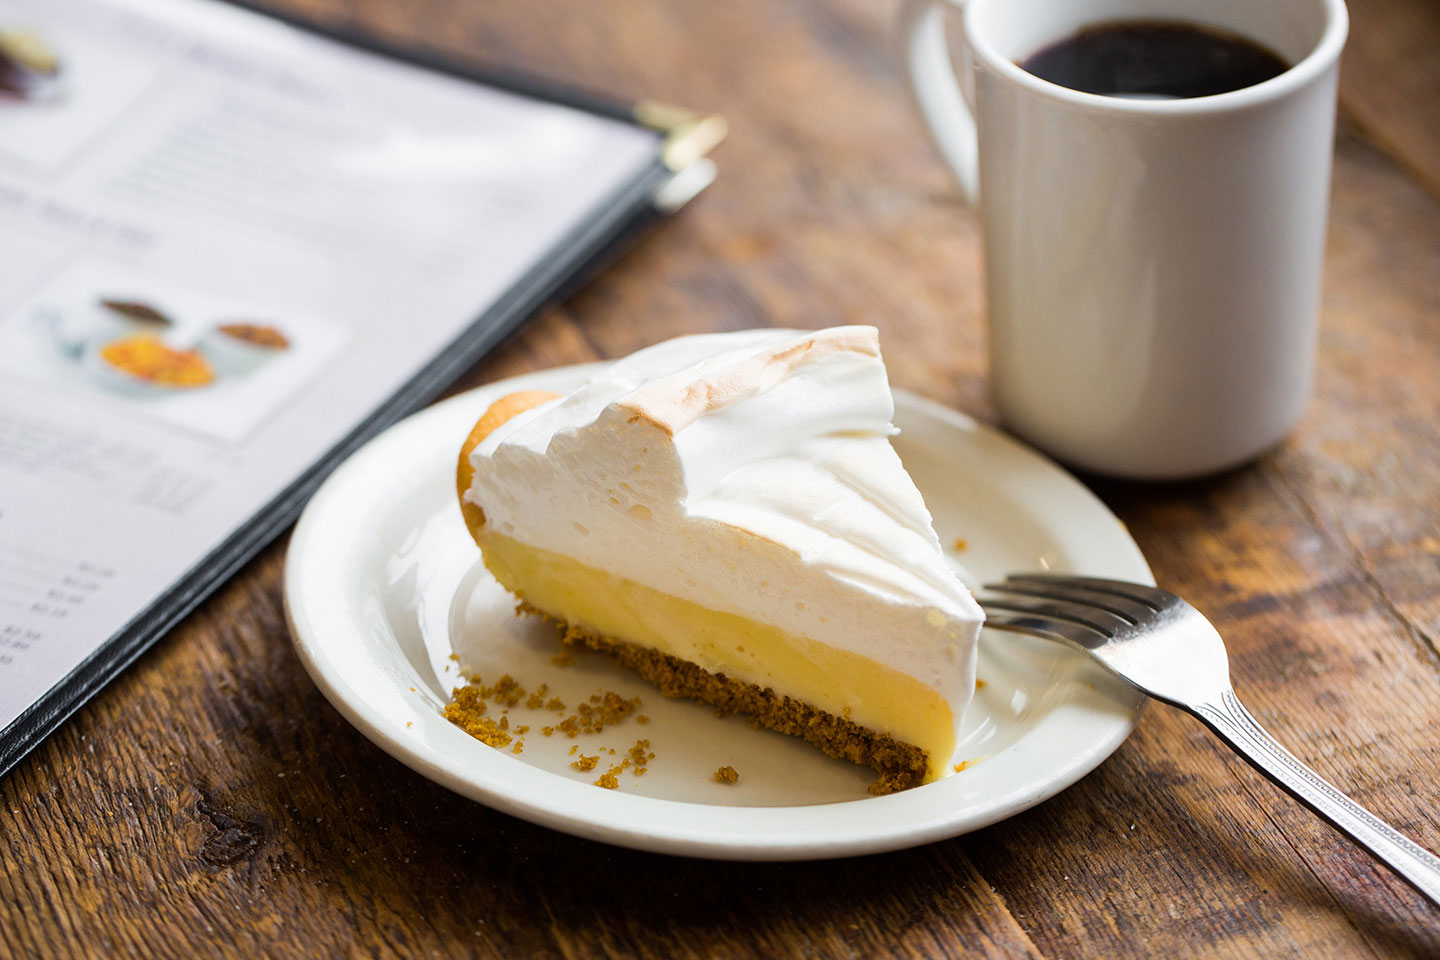 Chickfila Lemon Pie